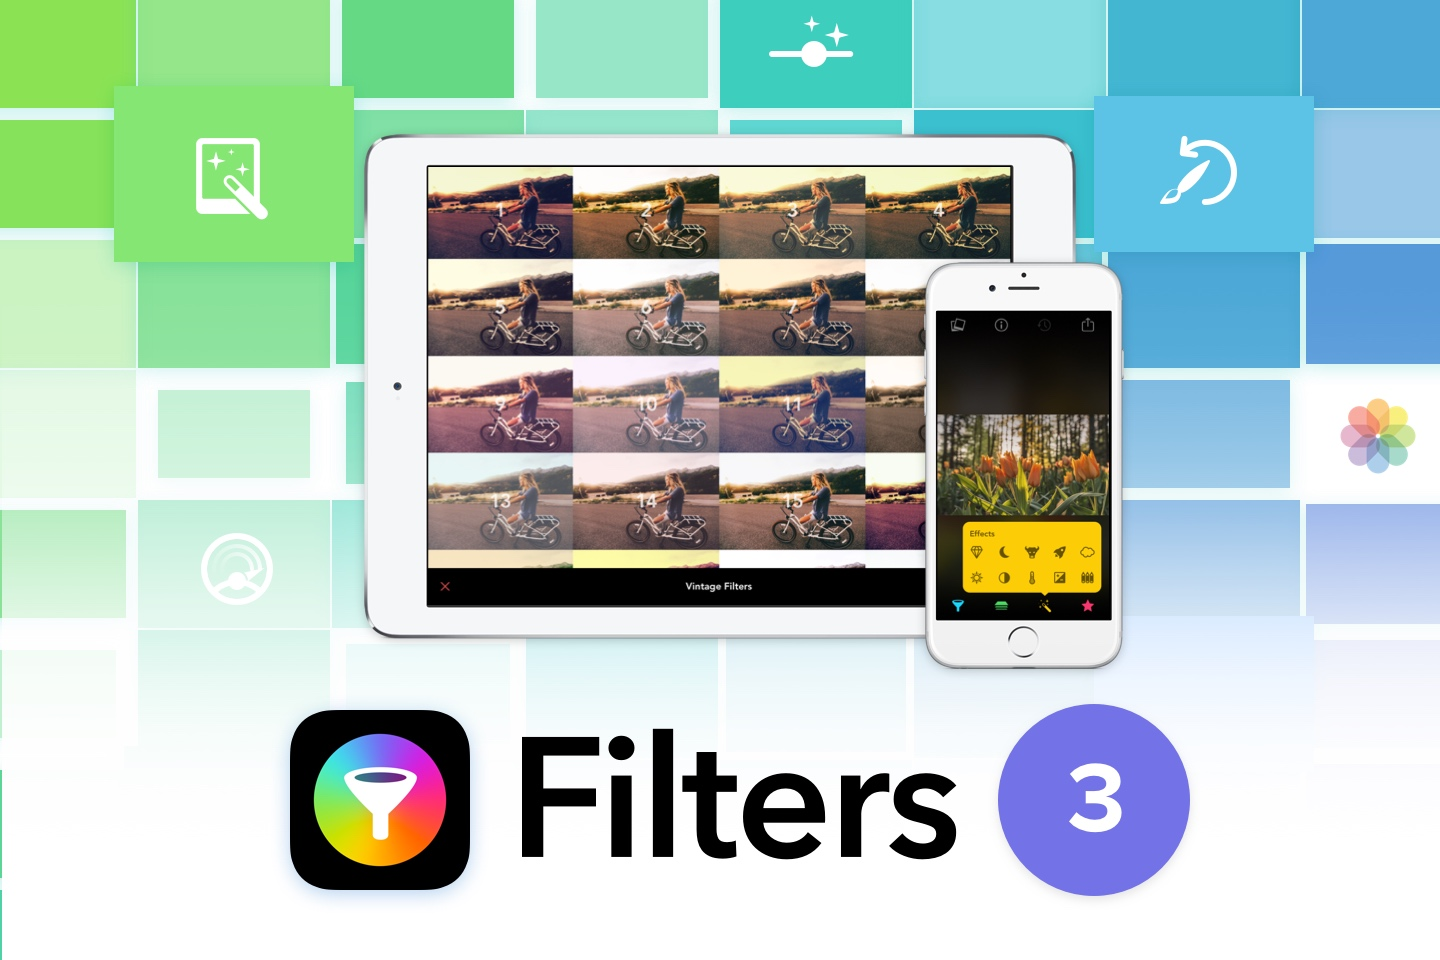 filters-3